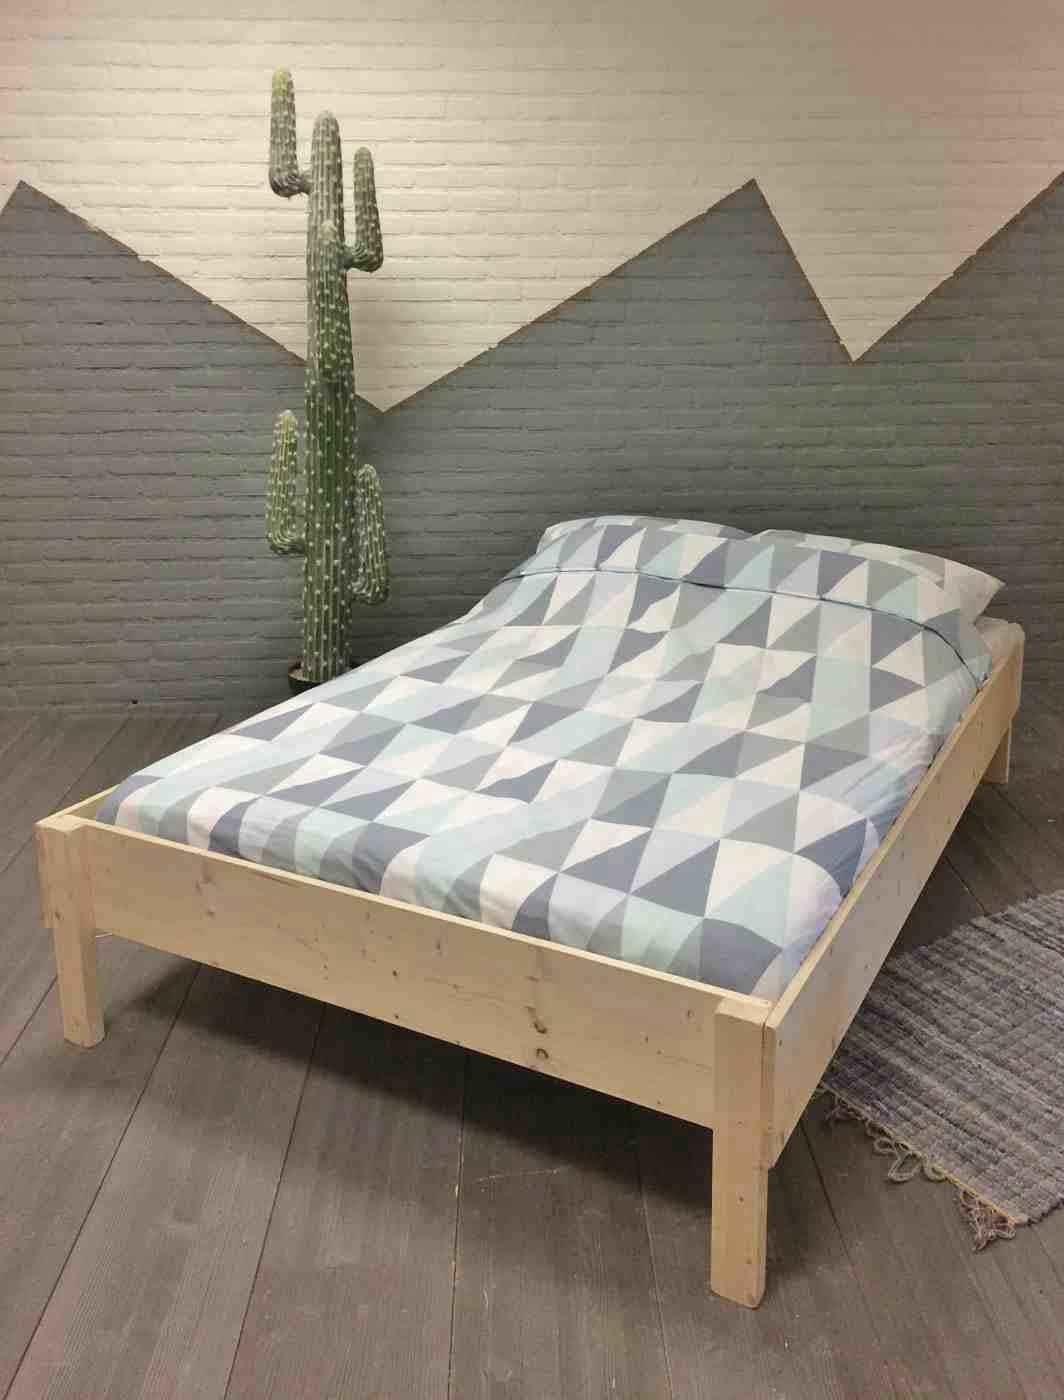 tweepersoonsbed Theo blank hout